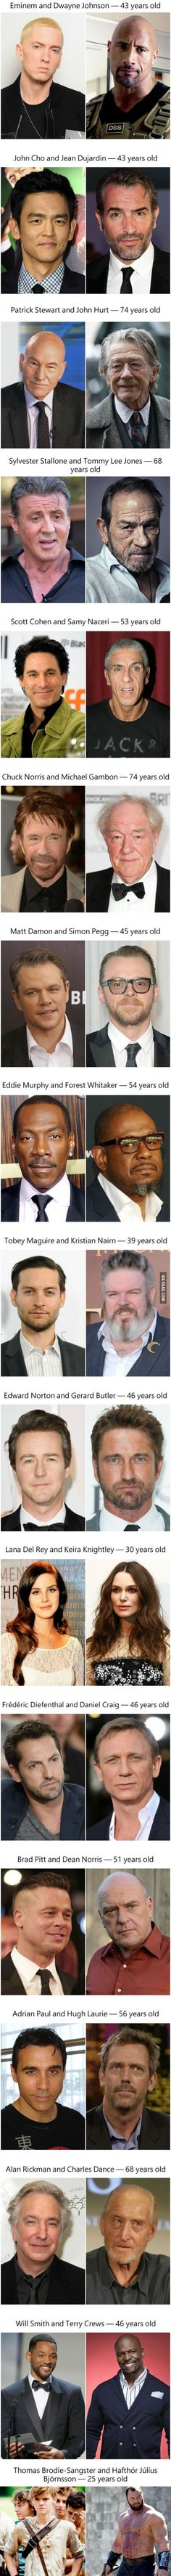 17 Unbelievable Photographs Of Celebrities Who Are The Same Age Note: that last one, though...